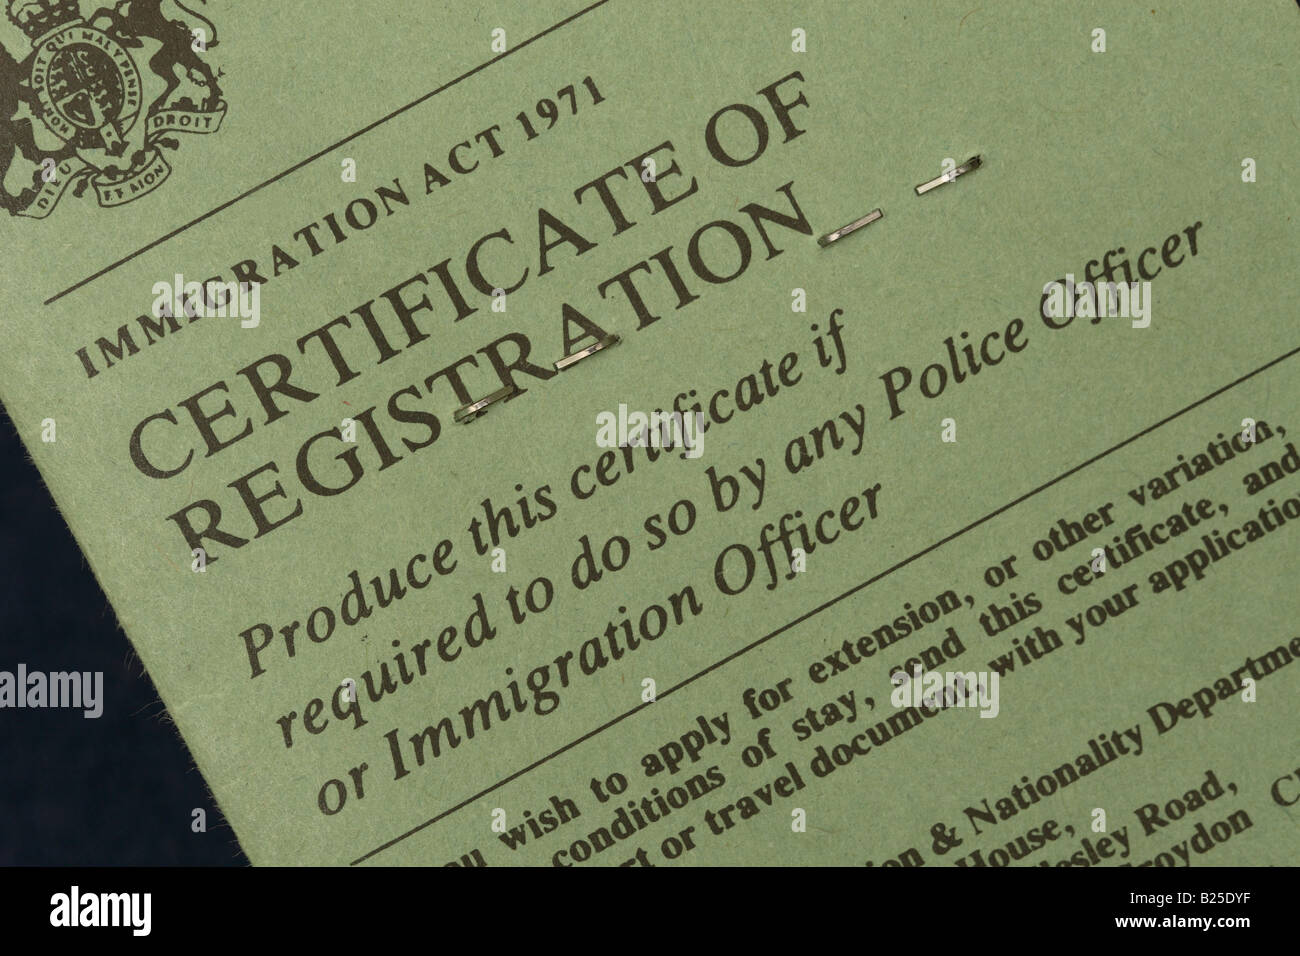 Certificate of Registration Home Office paperwork form for ...